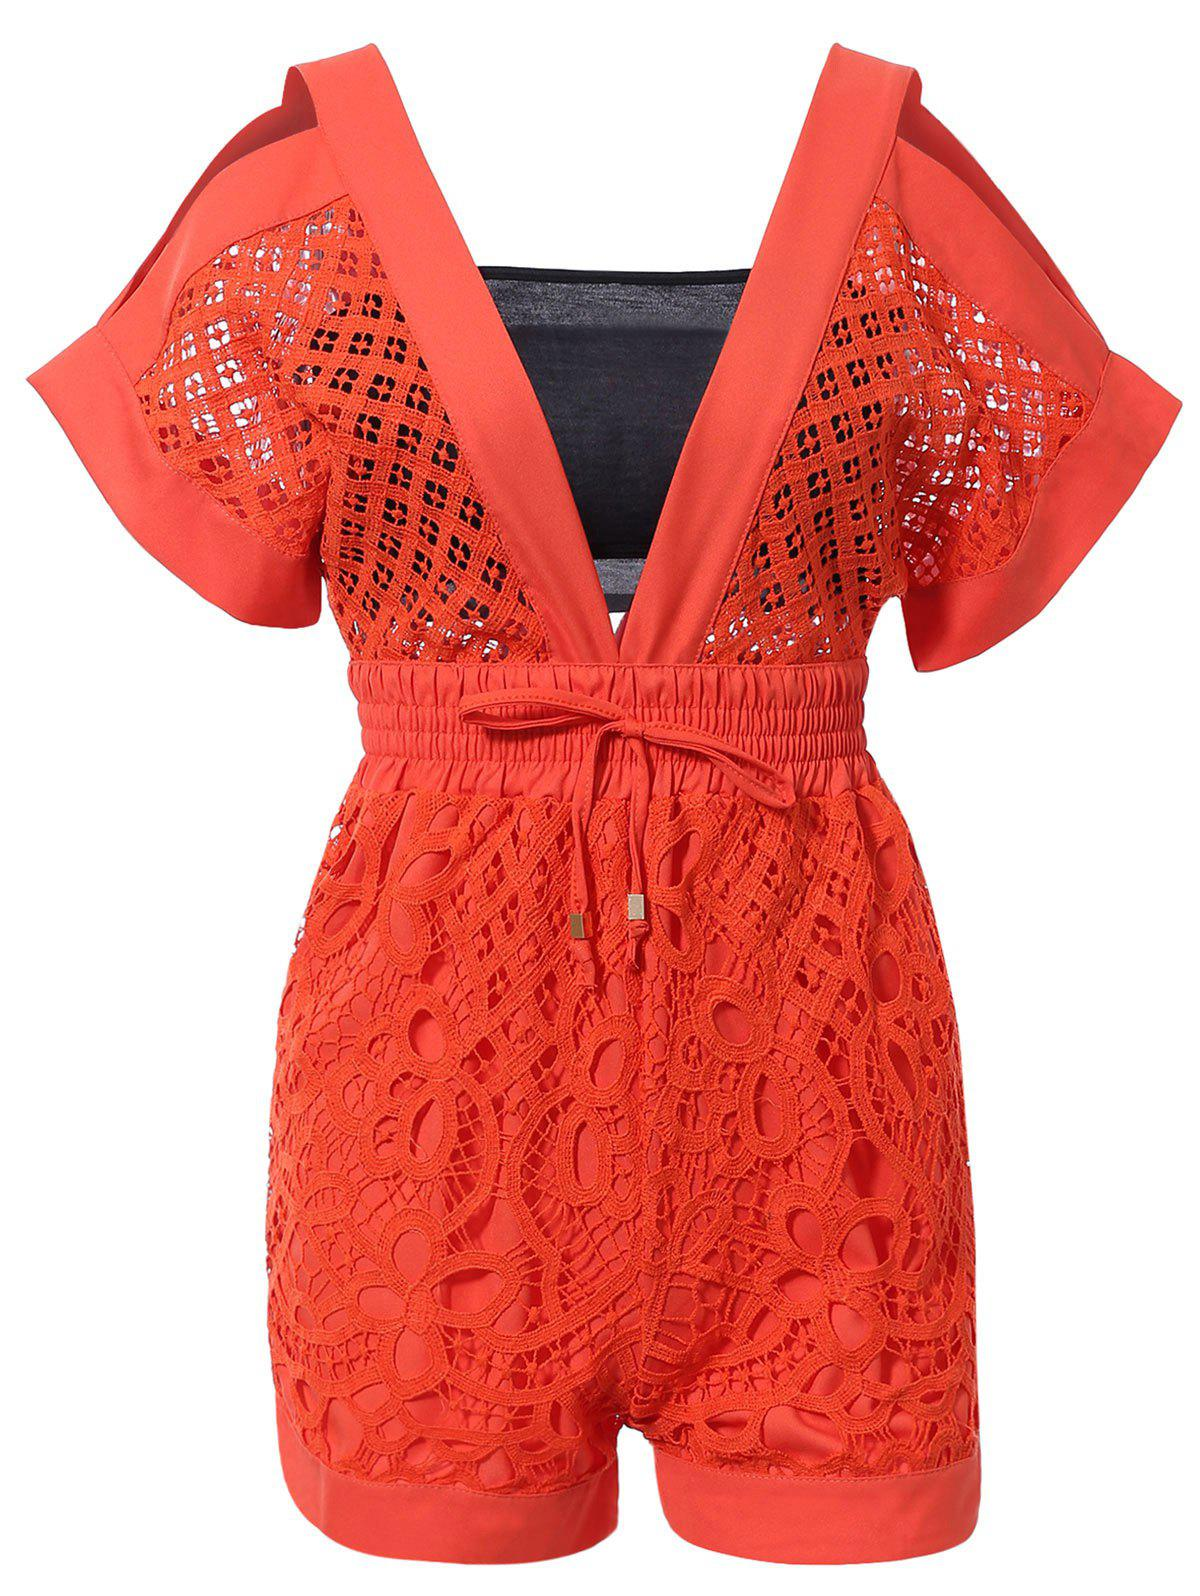 Chic Orange Lace Romper + Tube Top For Women - ORANGE RED ONE SIZE(FIT SIZE XS TO M)